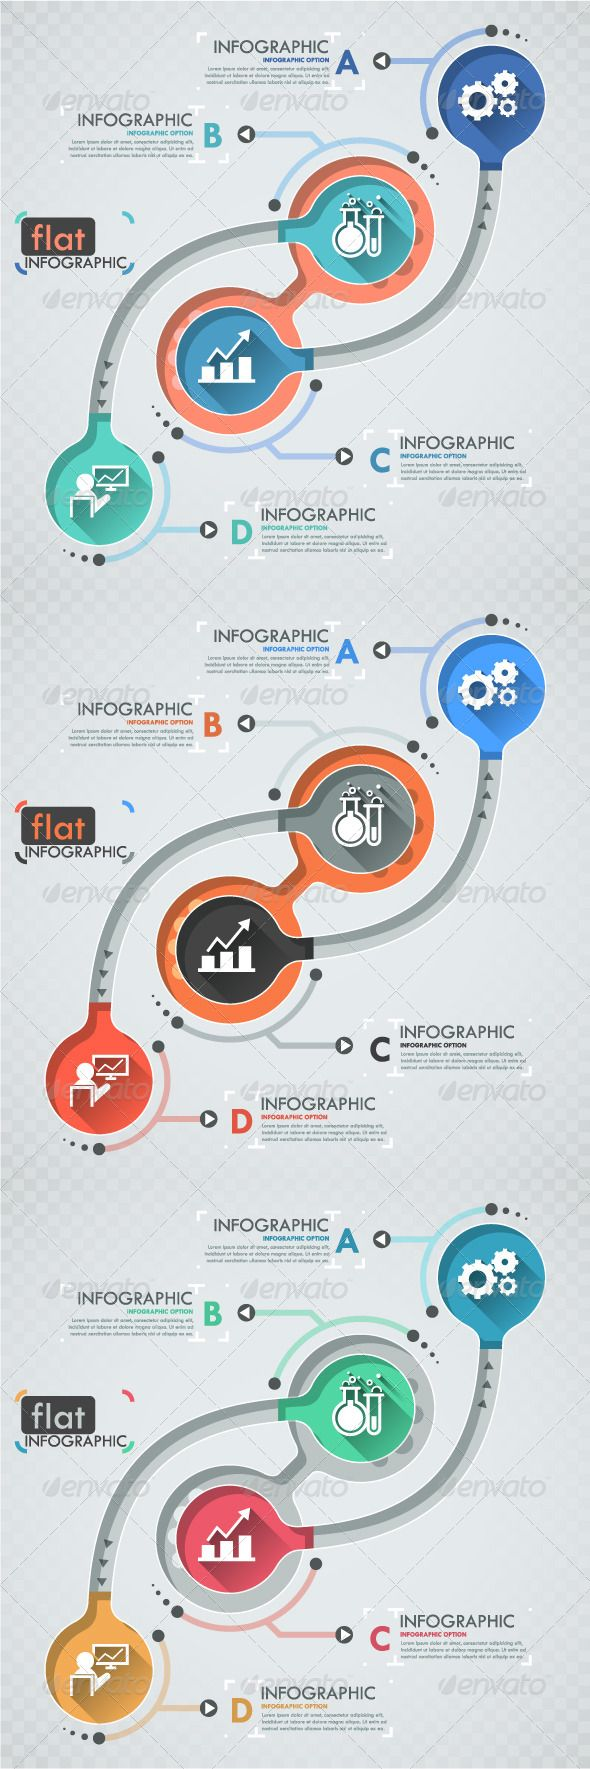 Flat Infographic Template (Three Versions) #design Download: http://graphicriver.net/item/flat-infographic-template-three-versions/8232917?ref=ksioks